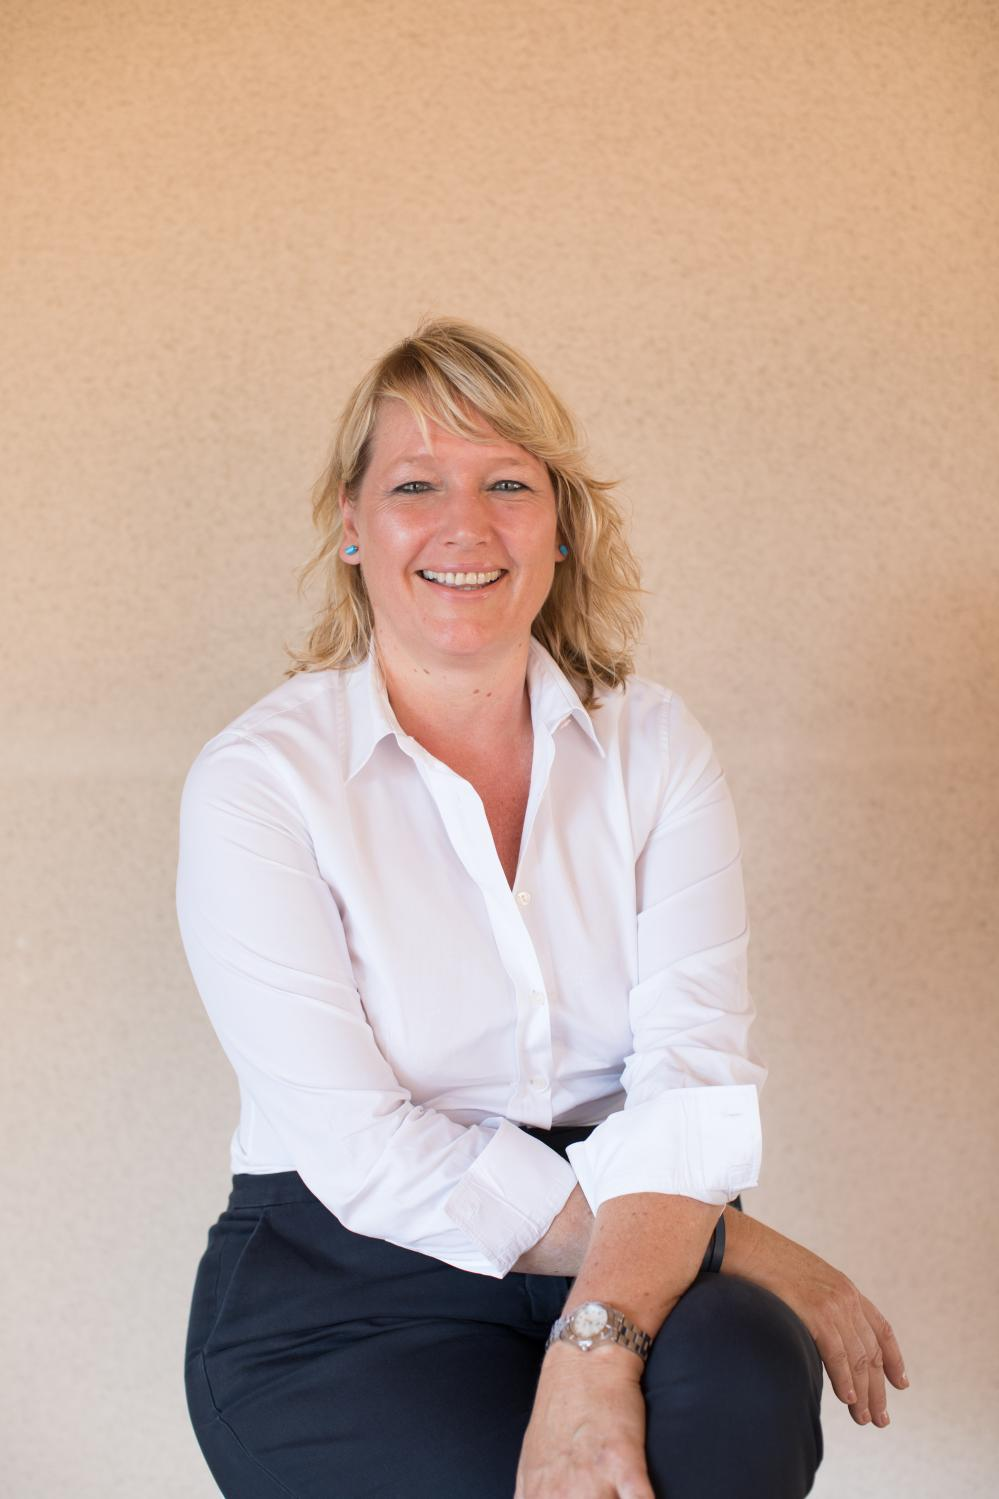 Five minutes with: Jacqui Lockhart, Retail Charter Broker - Interviews - Img 1   C&N